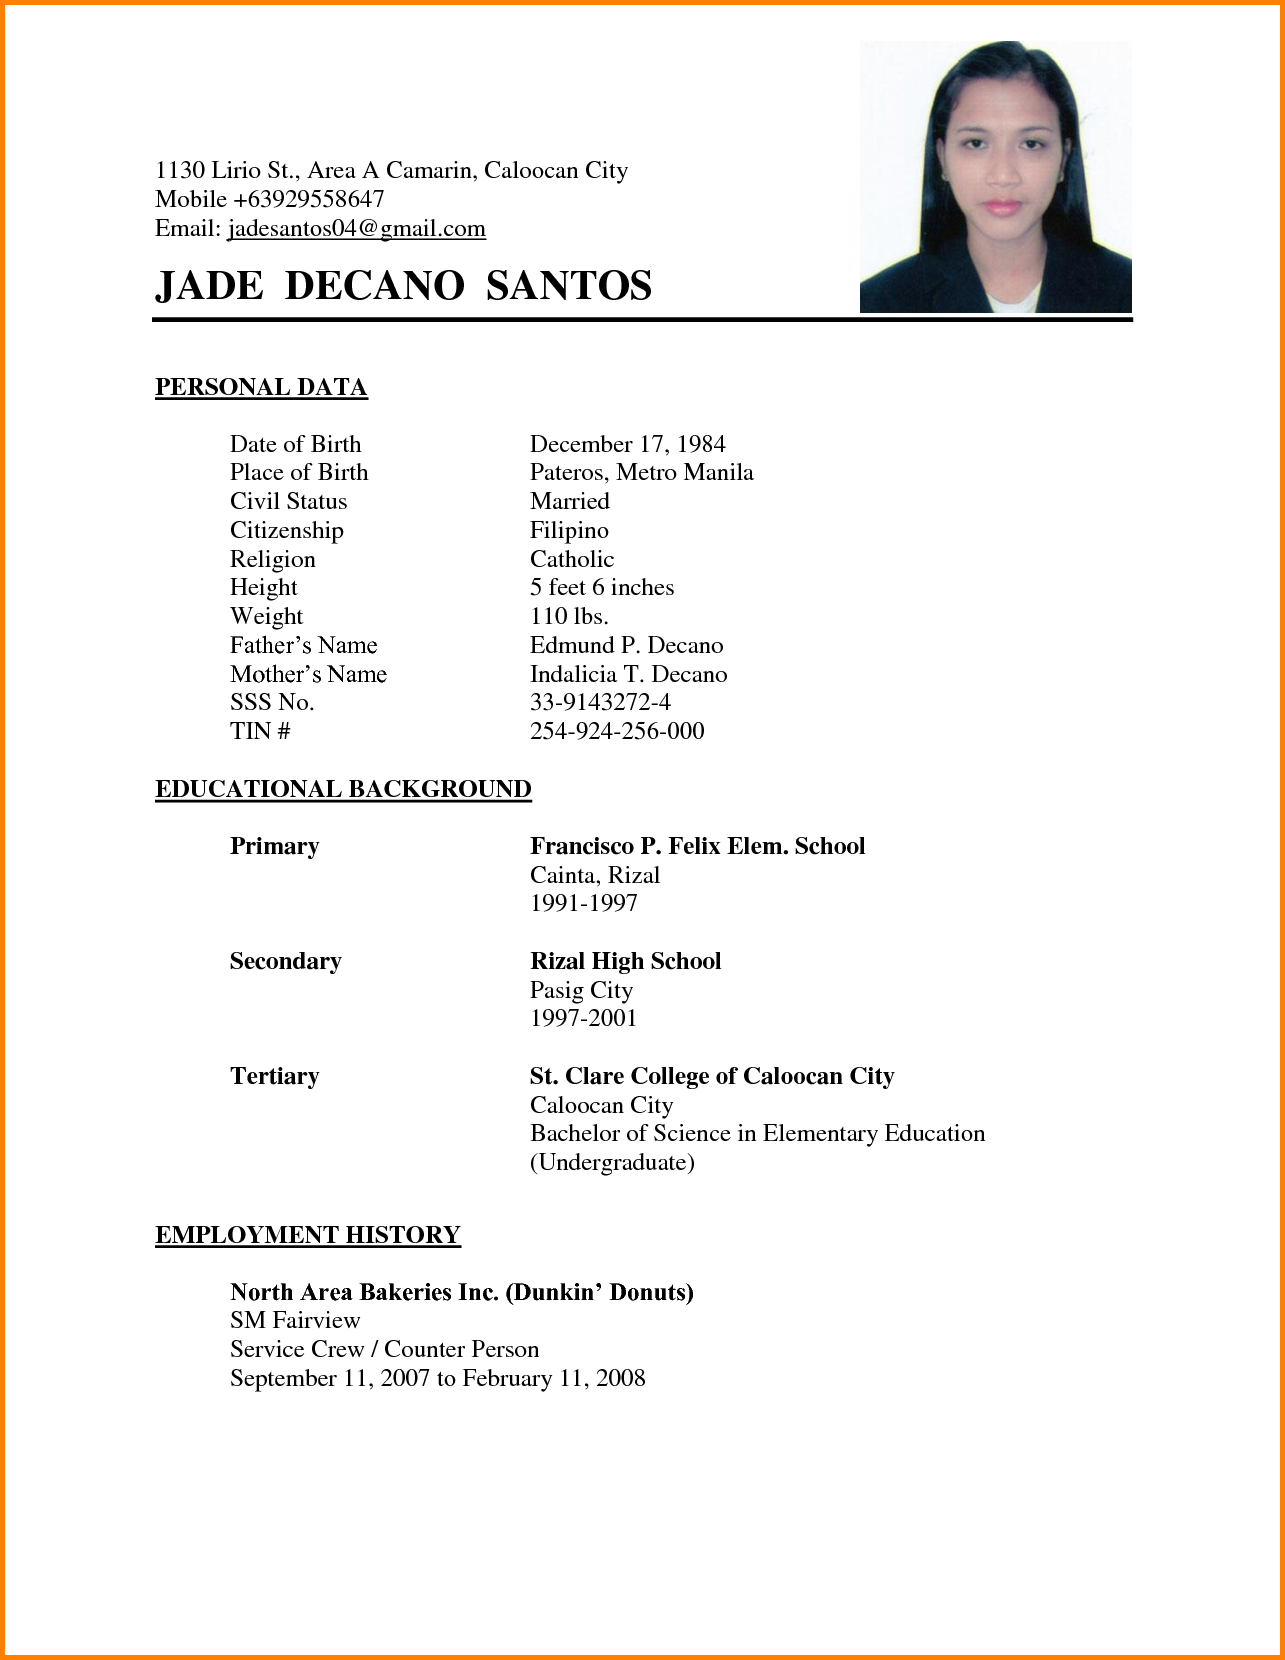 simple resume sample for service crew